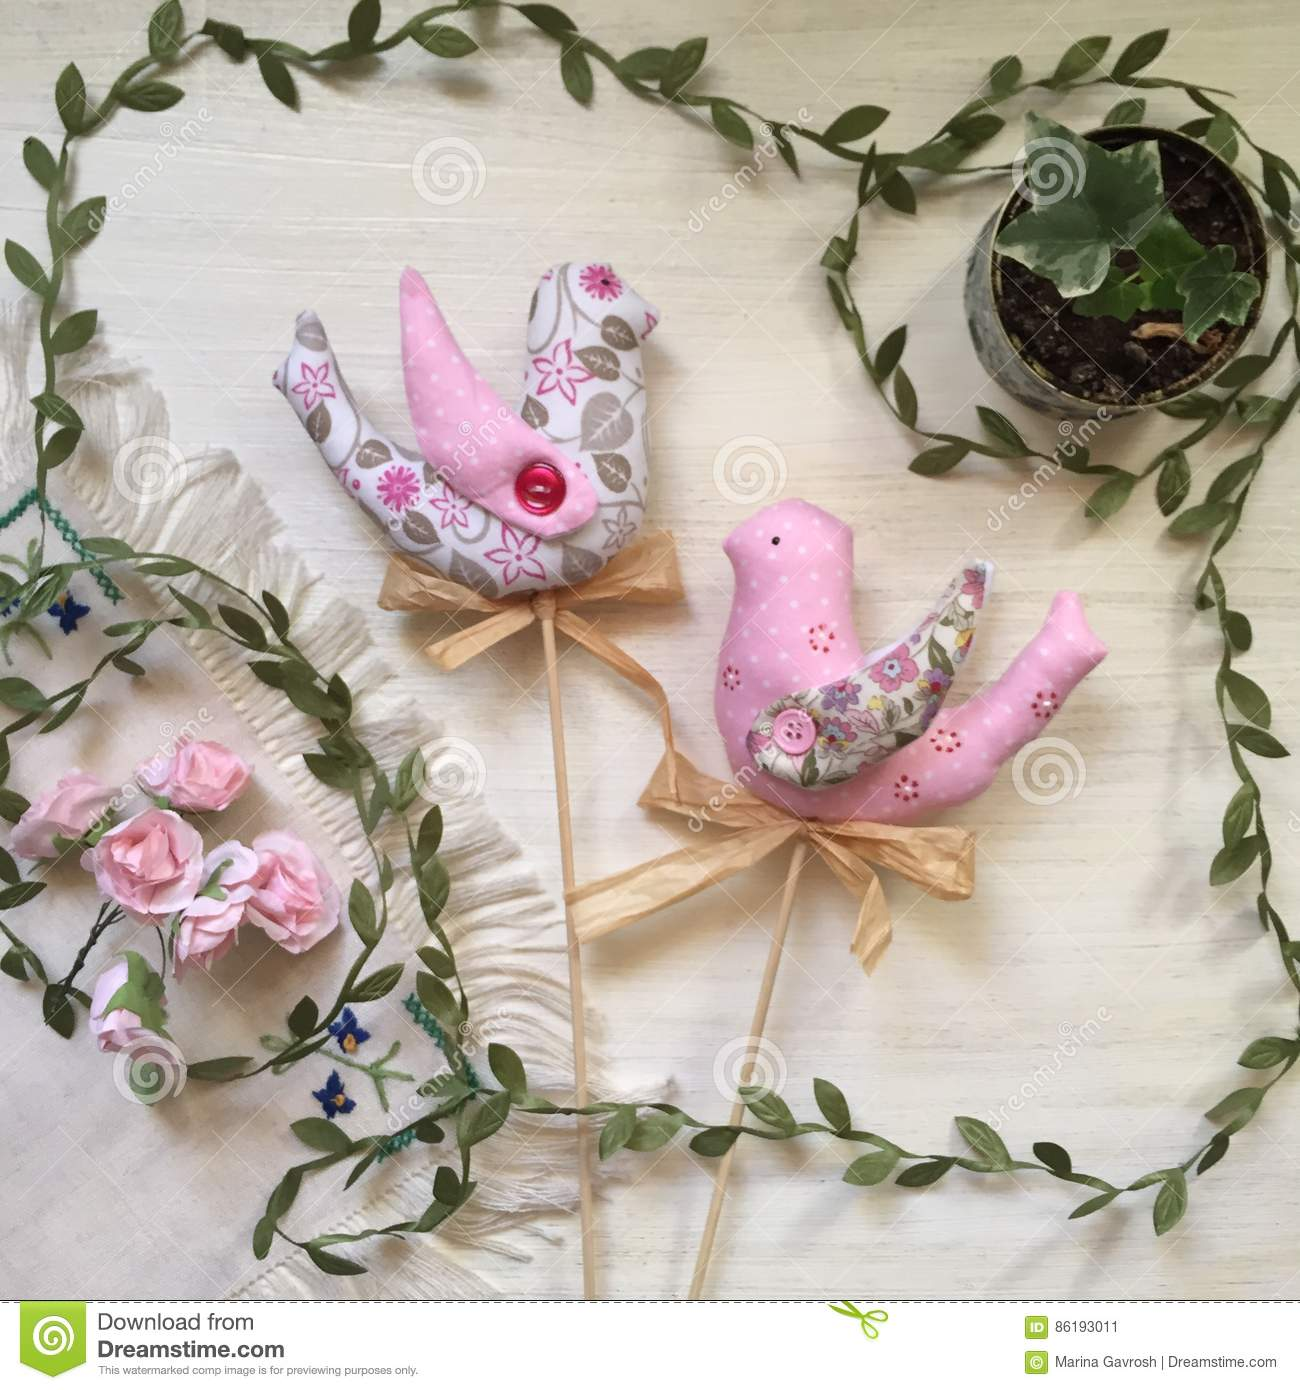 Lovely spring birdie handmade a symbol of spring royalty for Hand work decoration